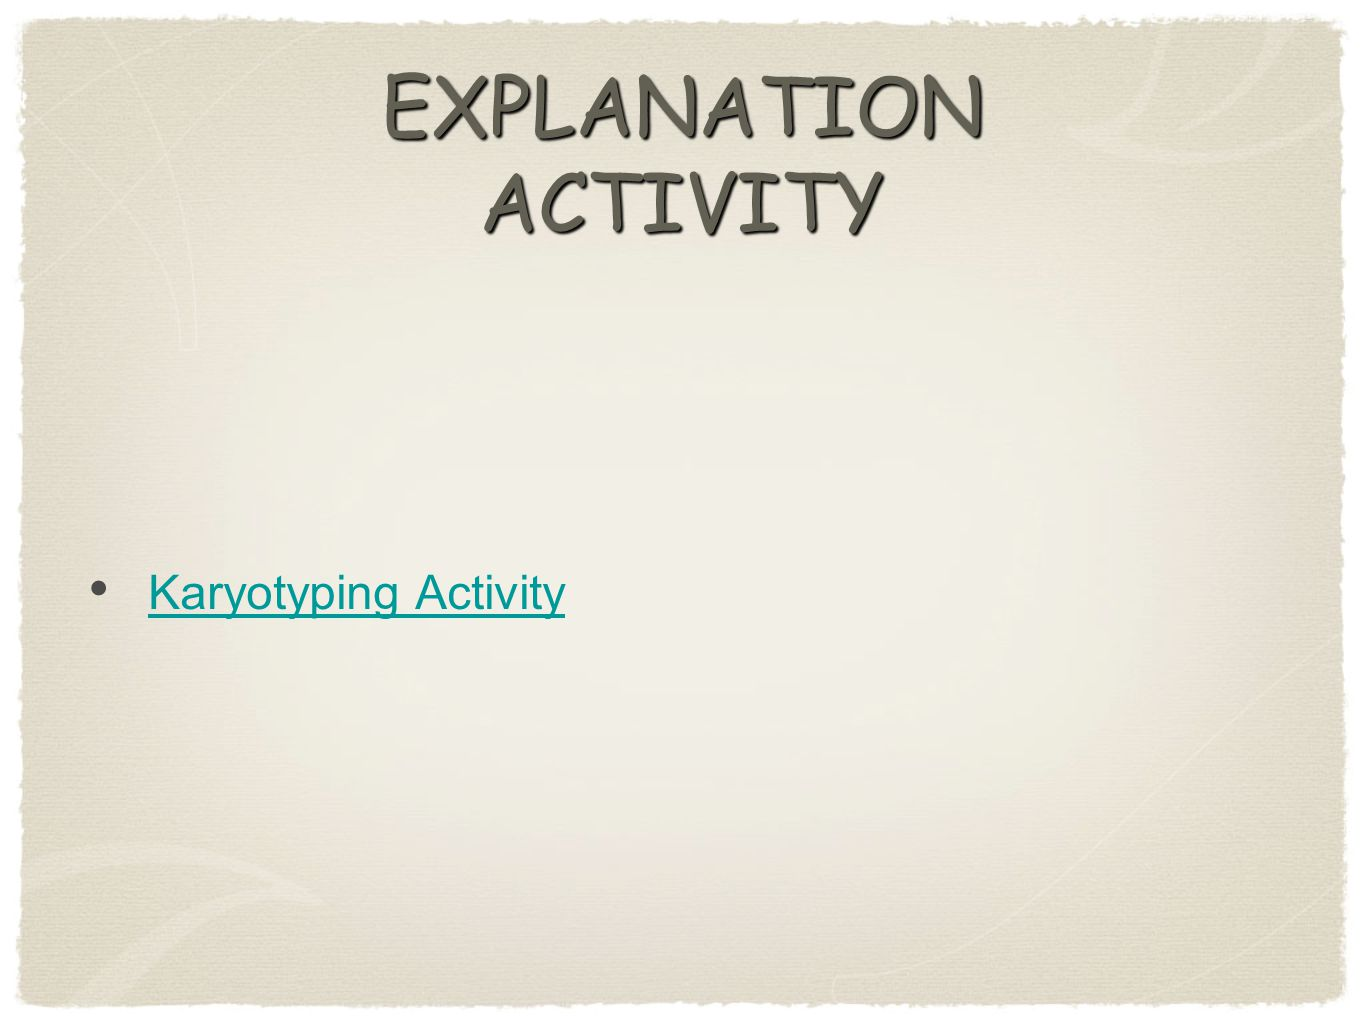 EXPLANATION ACTIVITY Karyotyping Activity